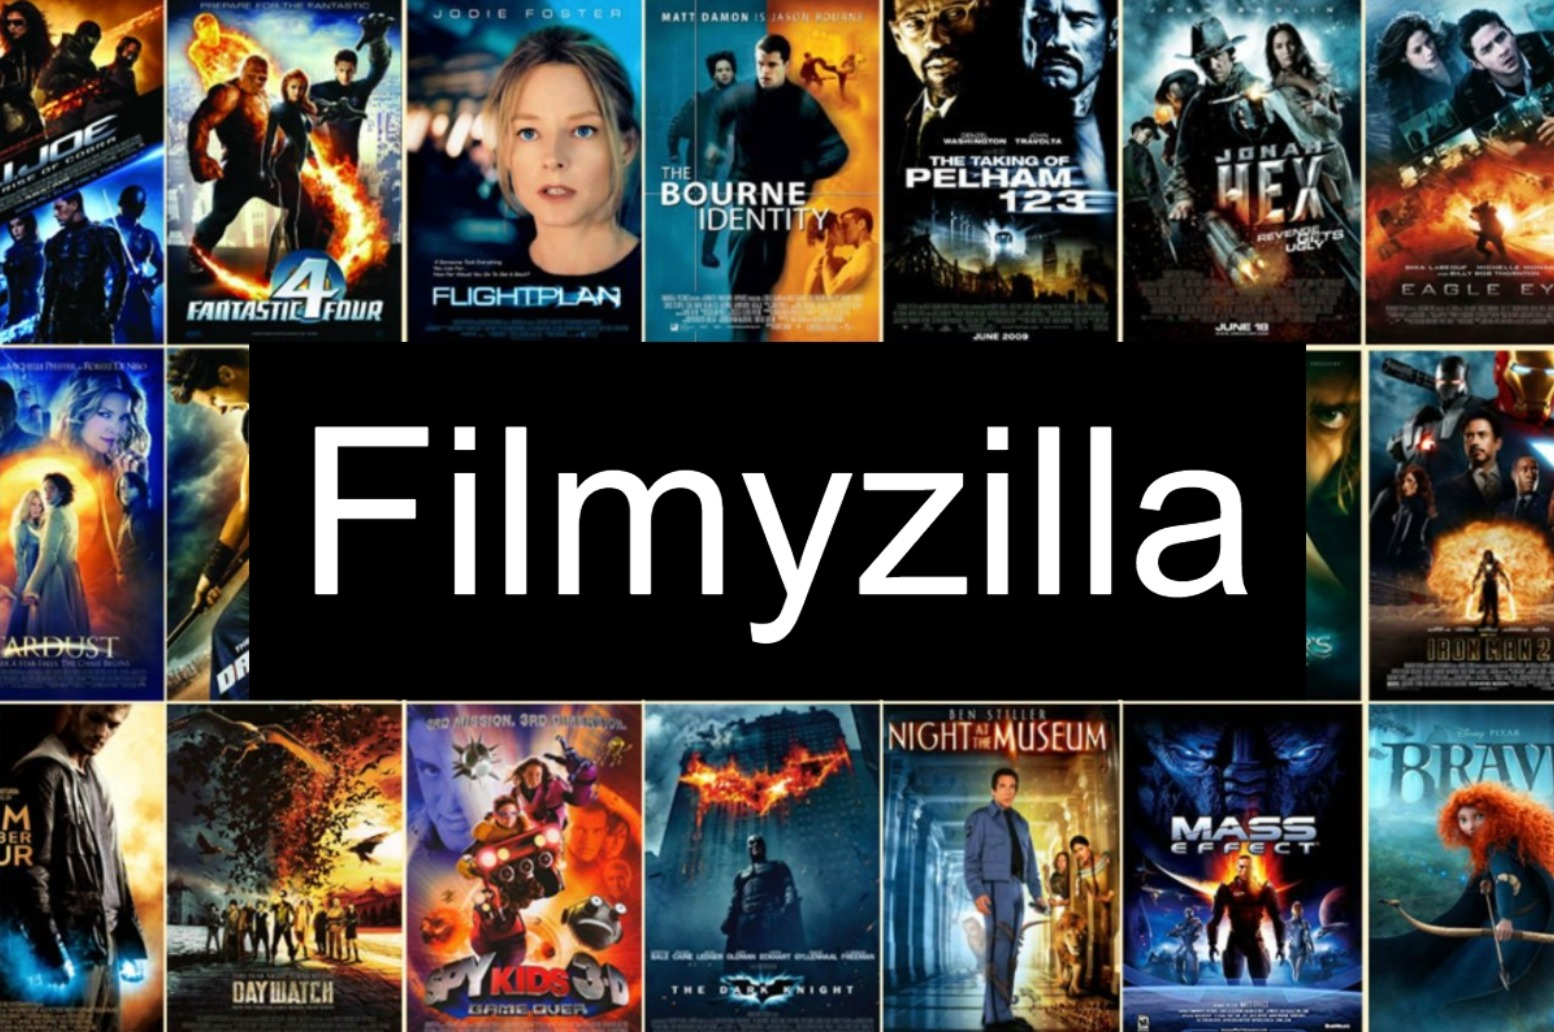 Filmyzilla 2020 Filmyzilla1 Filmyzilla Golf Download Filmyzilla Pink And Watch Online Movies From Filmyzilla Movie